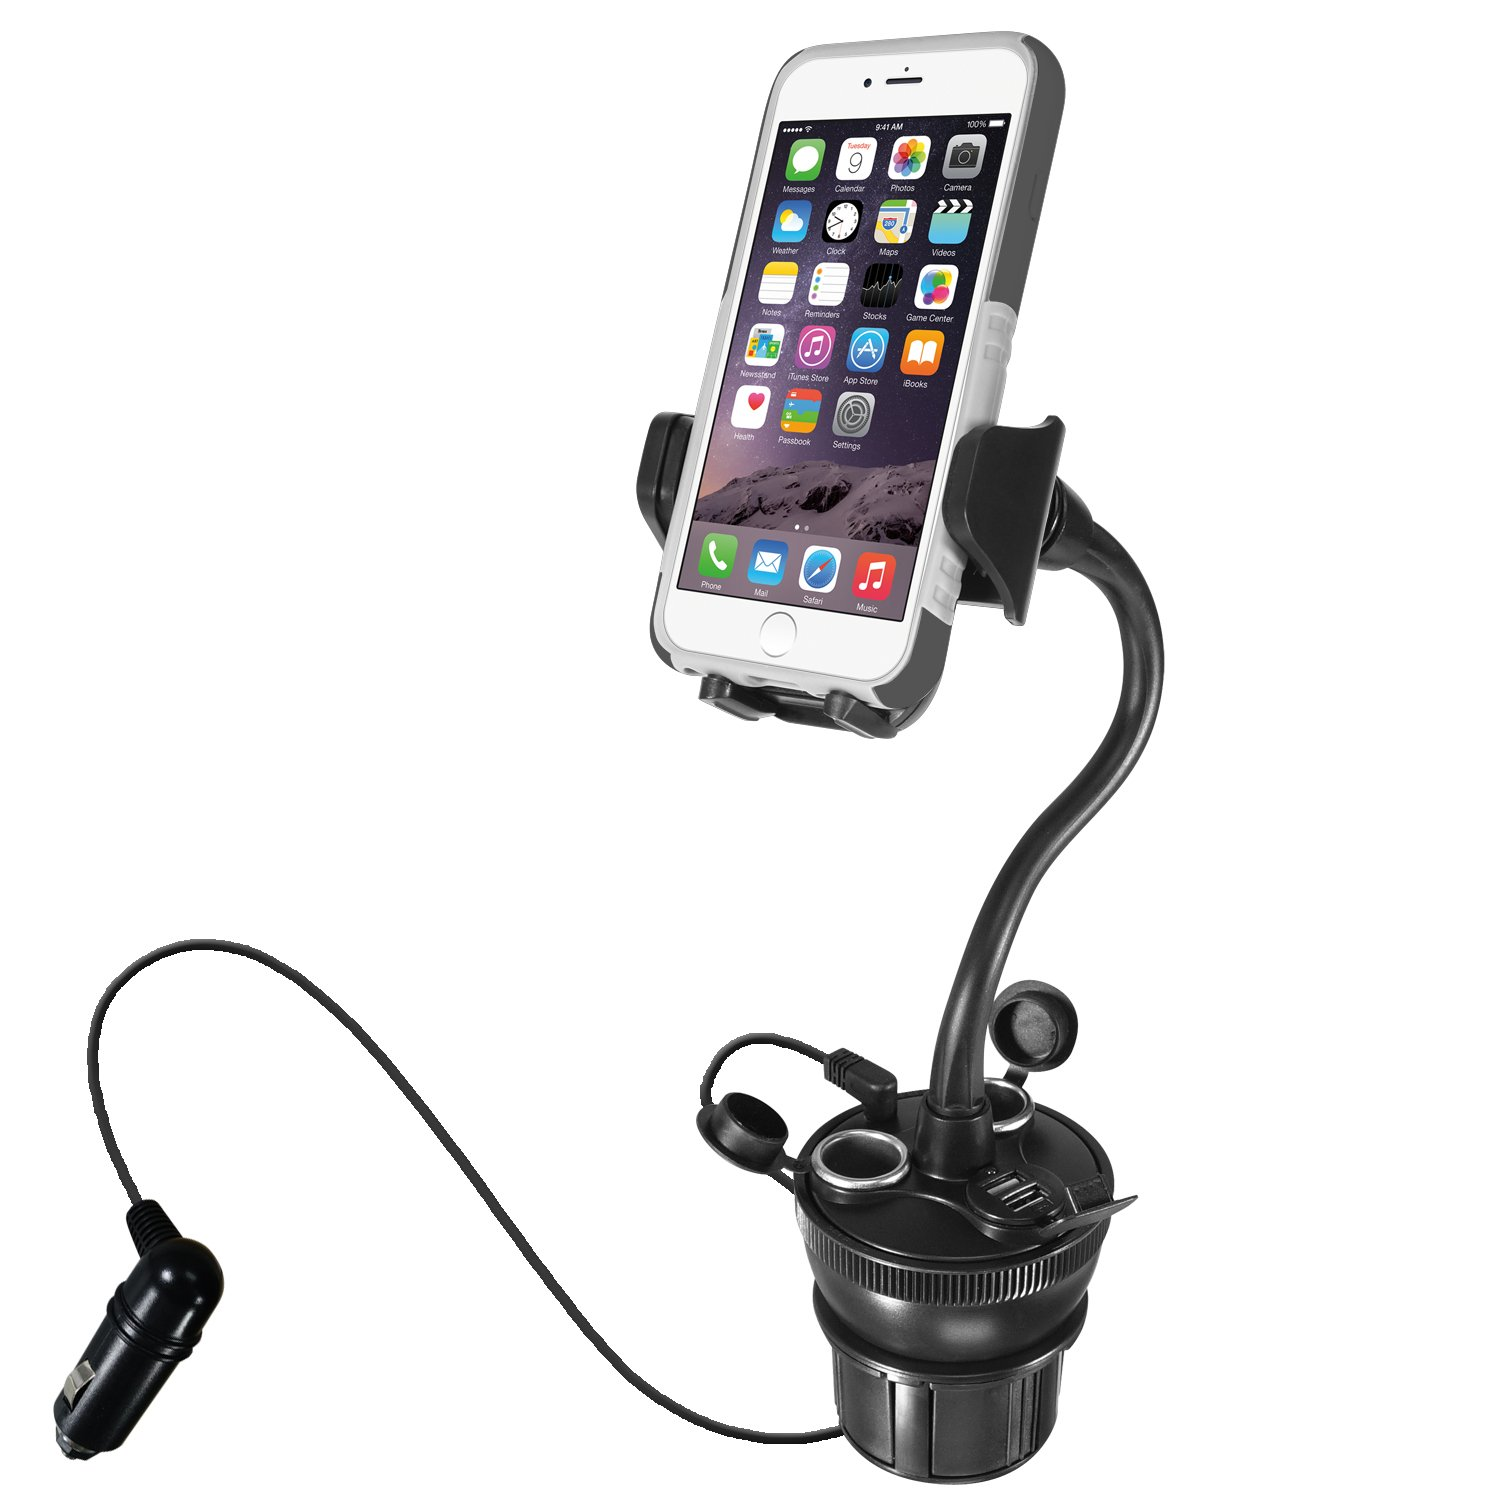 Macally Car Cup Holder Phone Mount with Two High Powered USB Charging Ports 4.2A 21W, 2 Cigarette Lighter Sockets, & 8'' Long Neck for iPhone X 8 8+ 7 Plus, Samsung Galaxy, etc. (MCUPPOWER)